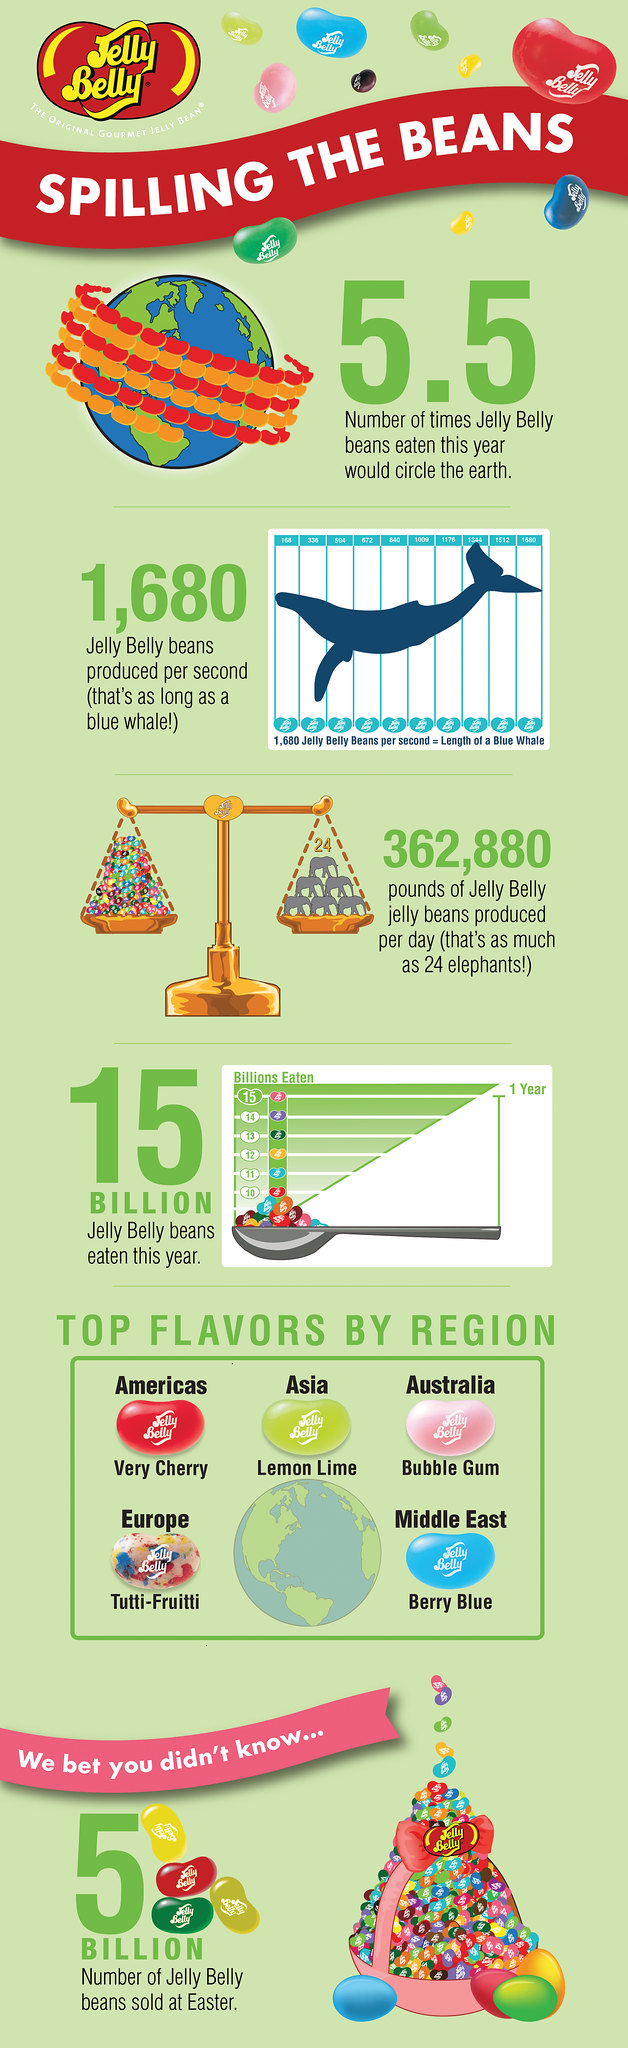 Spilling the Beans Infographic